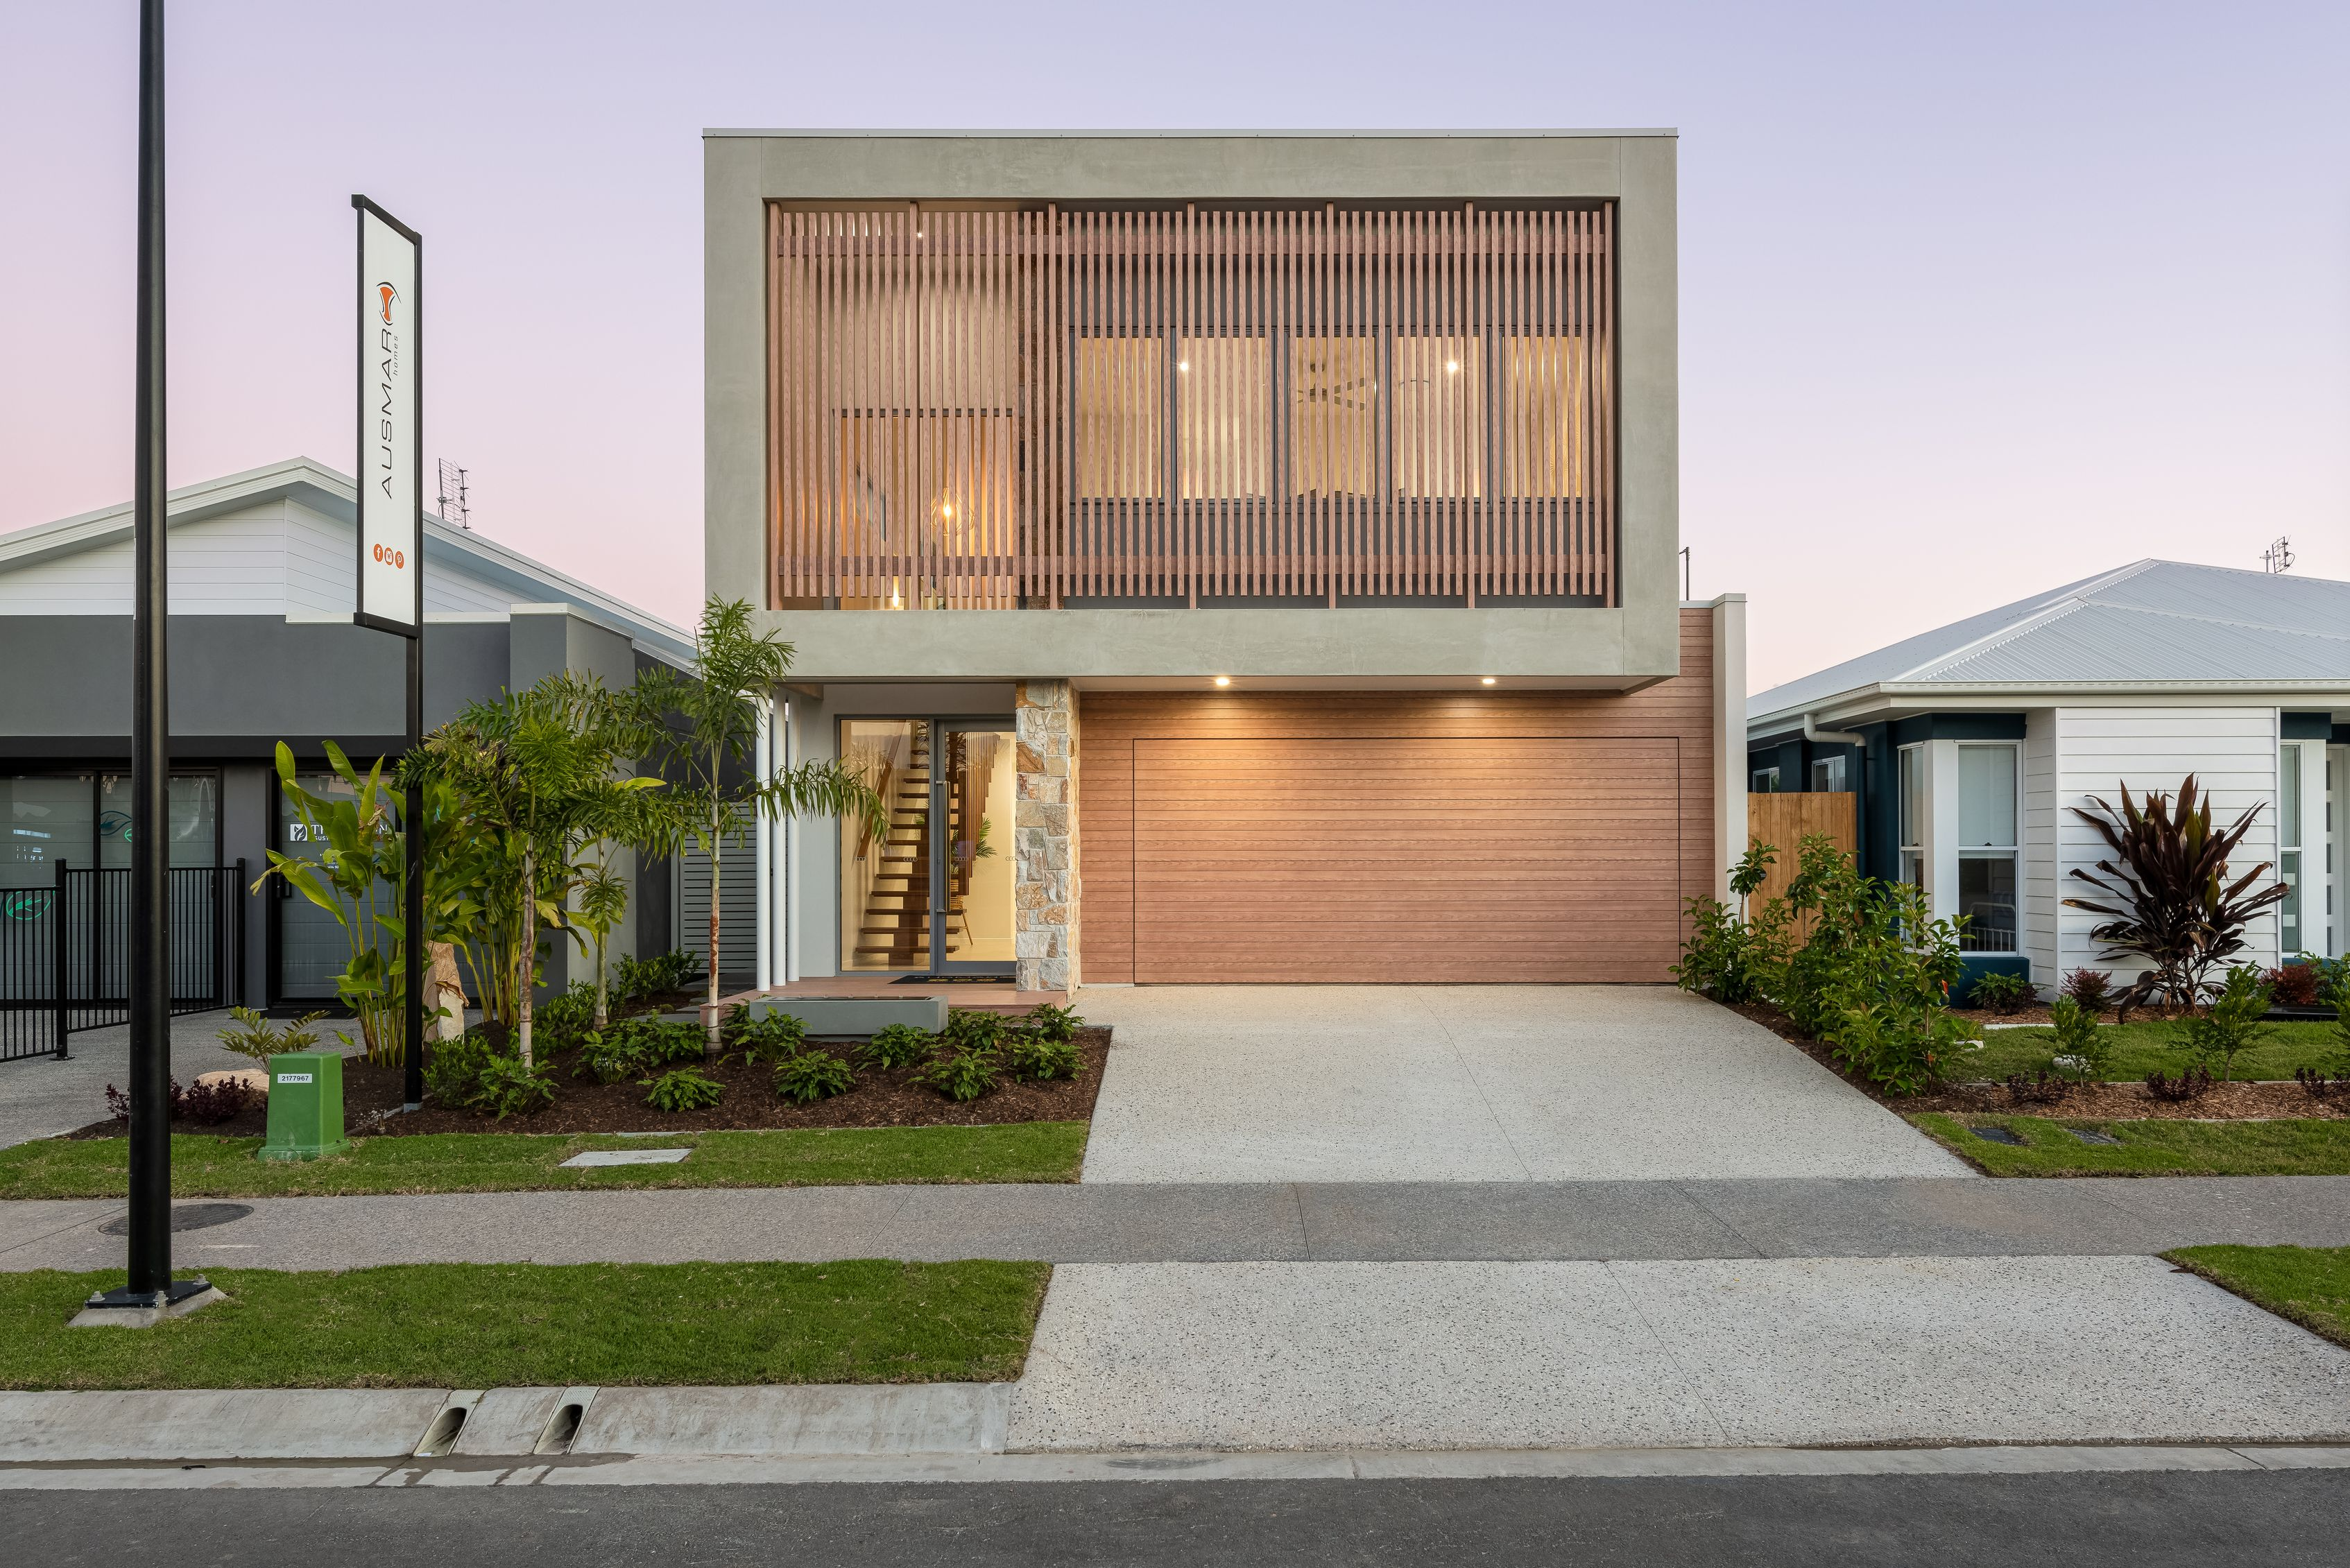 Ausmar's Display Home Excellence Up For Grabs at 6% ROI till September 2022